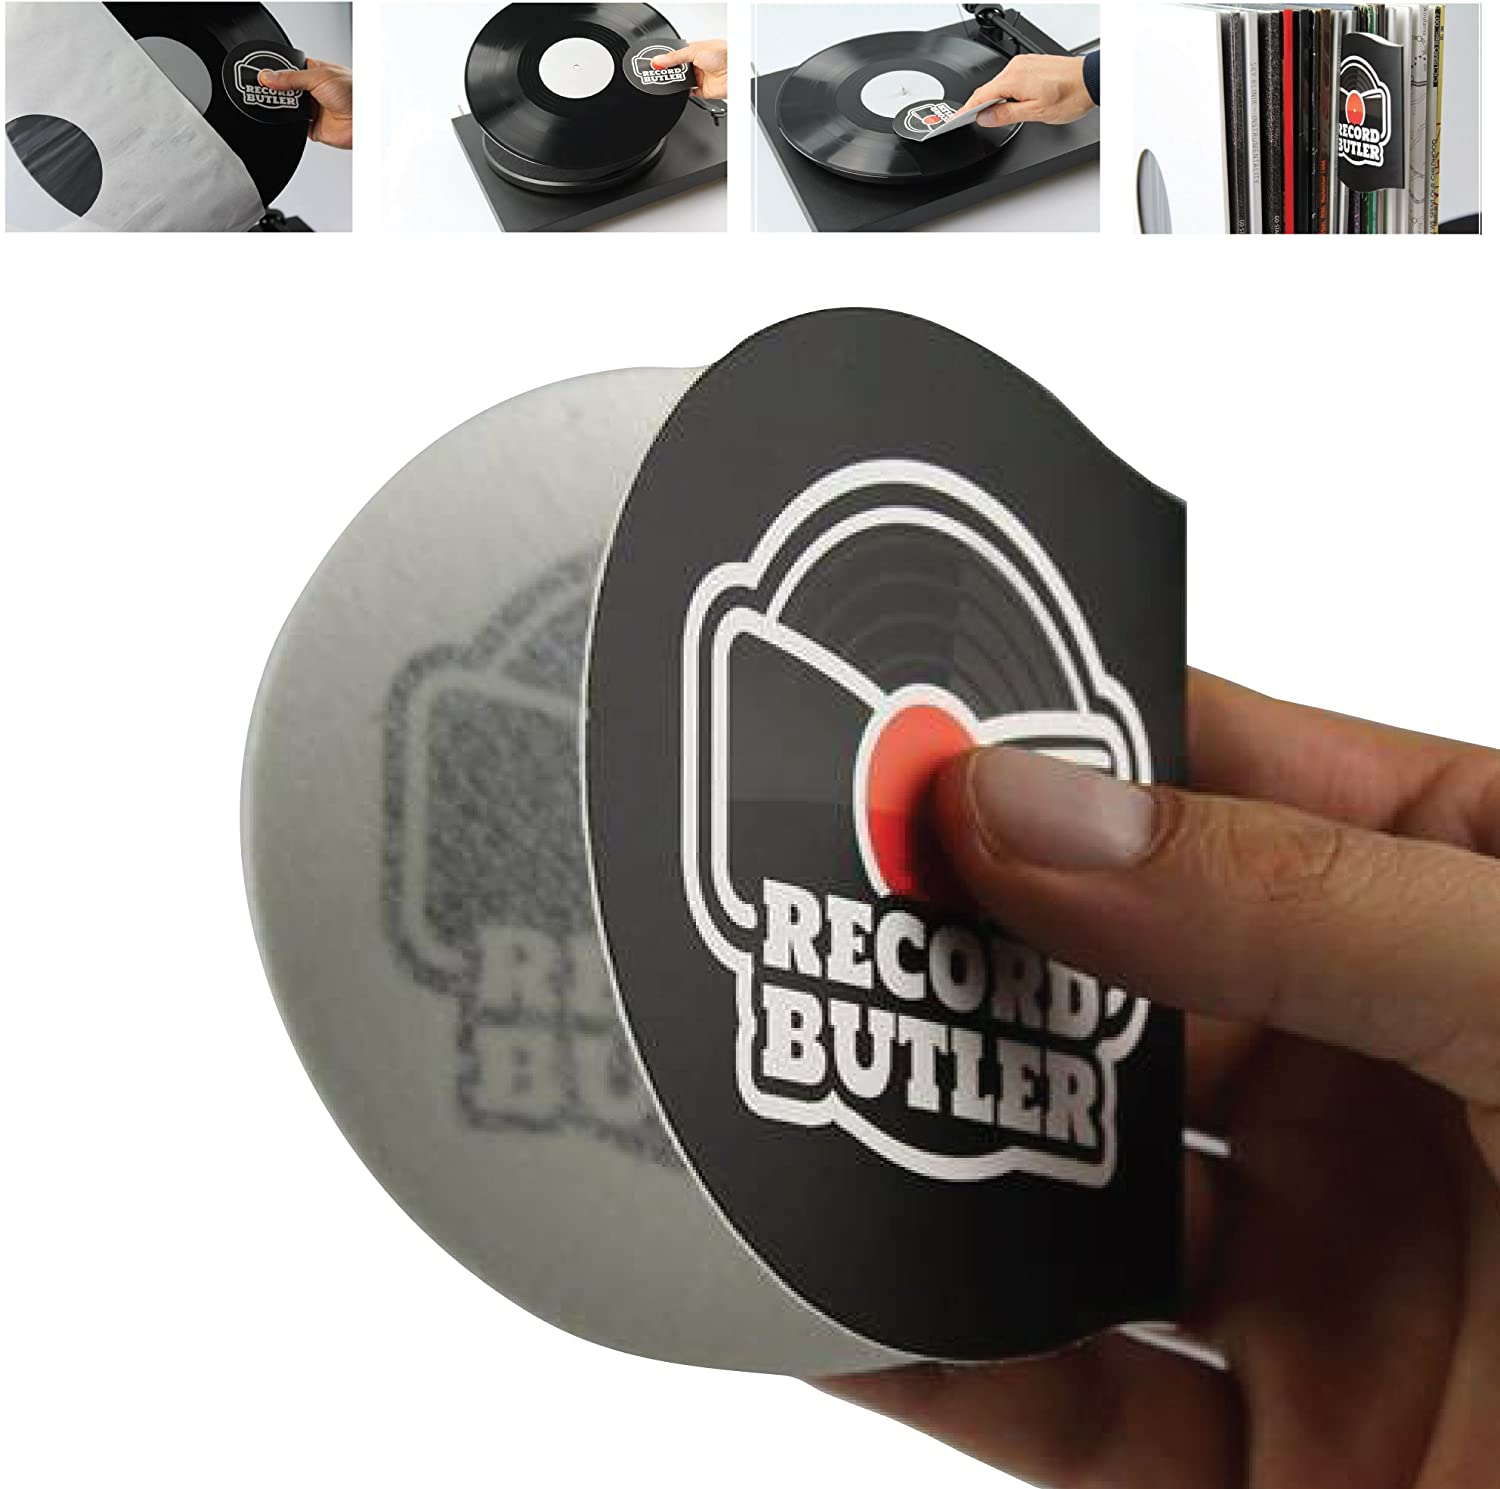 New color The Record Butler 2-Pack Anti S Cleaner Handler. Static Trust